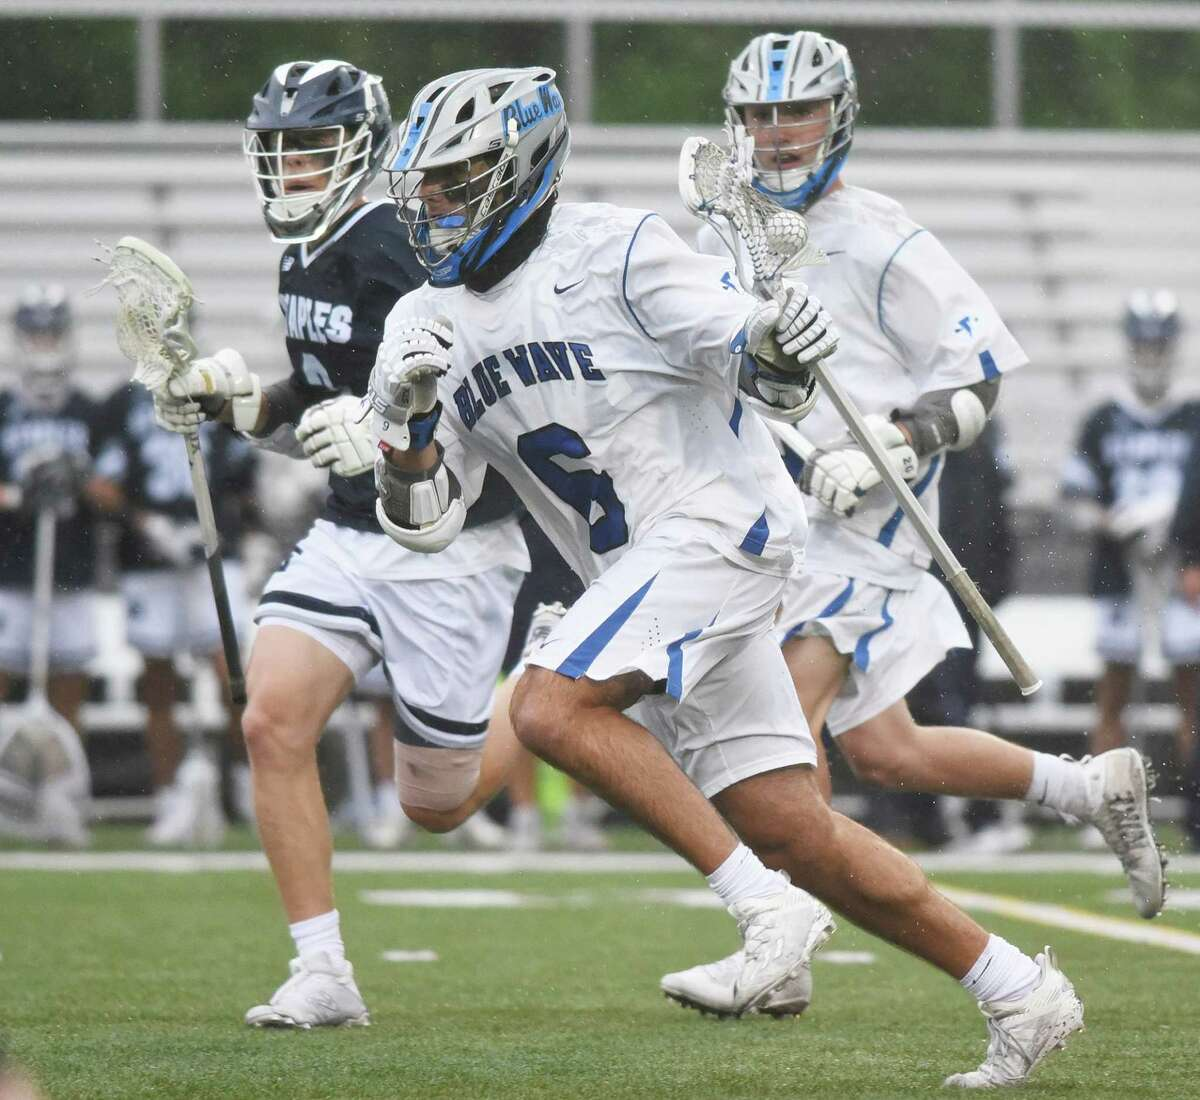 Darien's Connor O'Malley (6) breaks out of the defensive zone with the ball against Staples during the FCIAC final Friday.